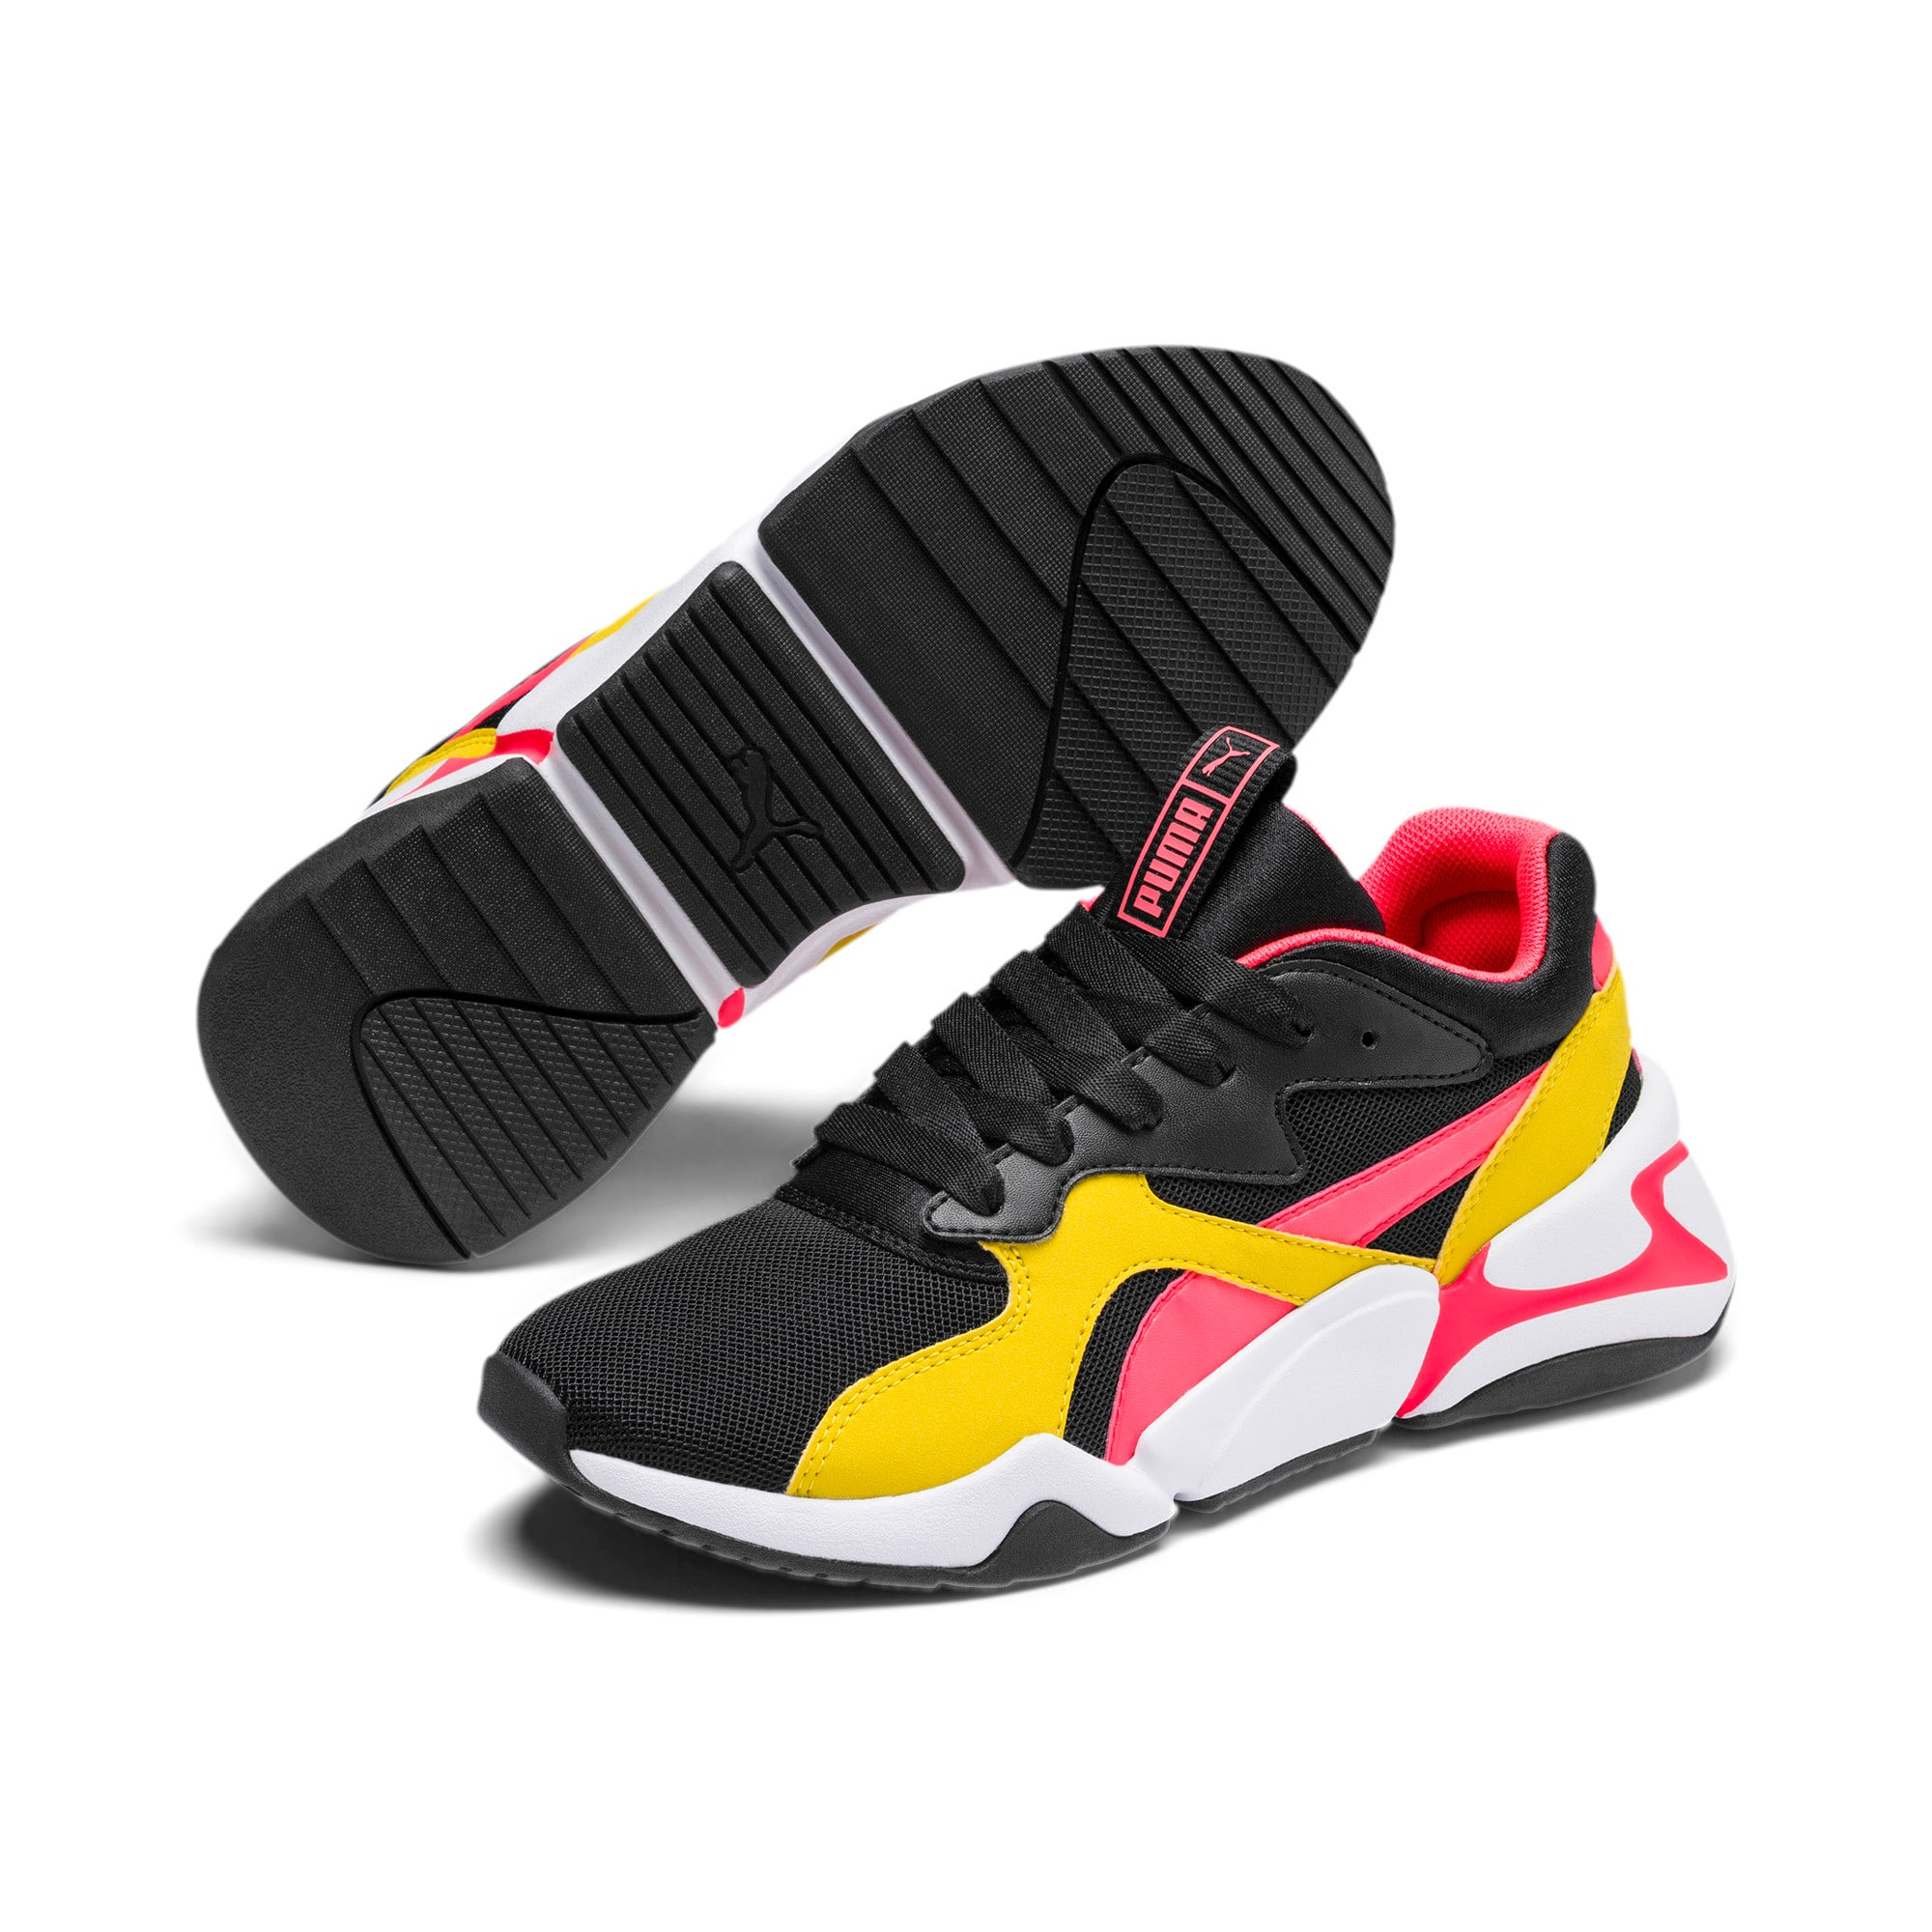 Thumbnail 2 of Nova Funky Youth Trainers, Puma Black-Sulphur, medium